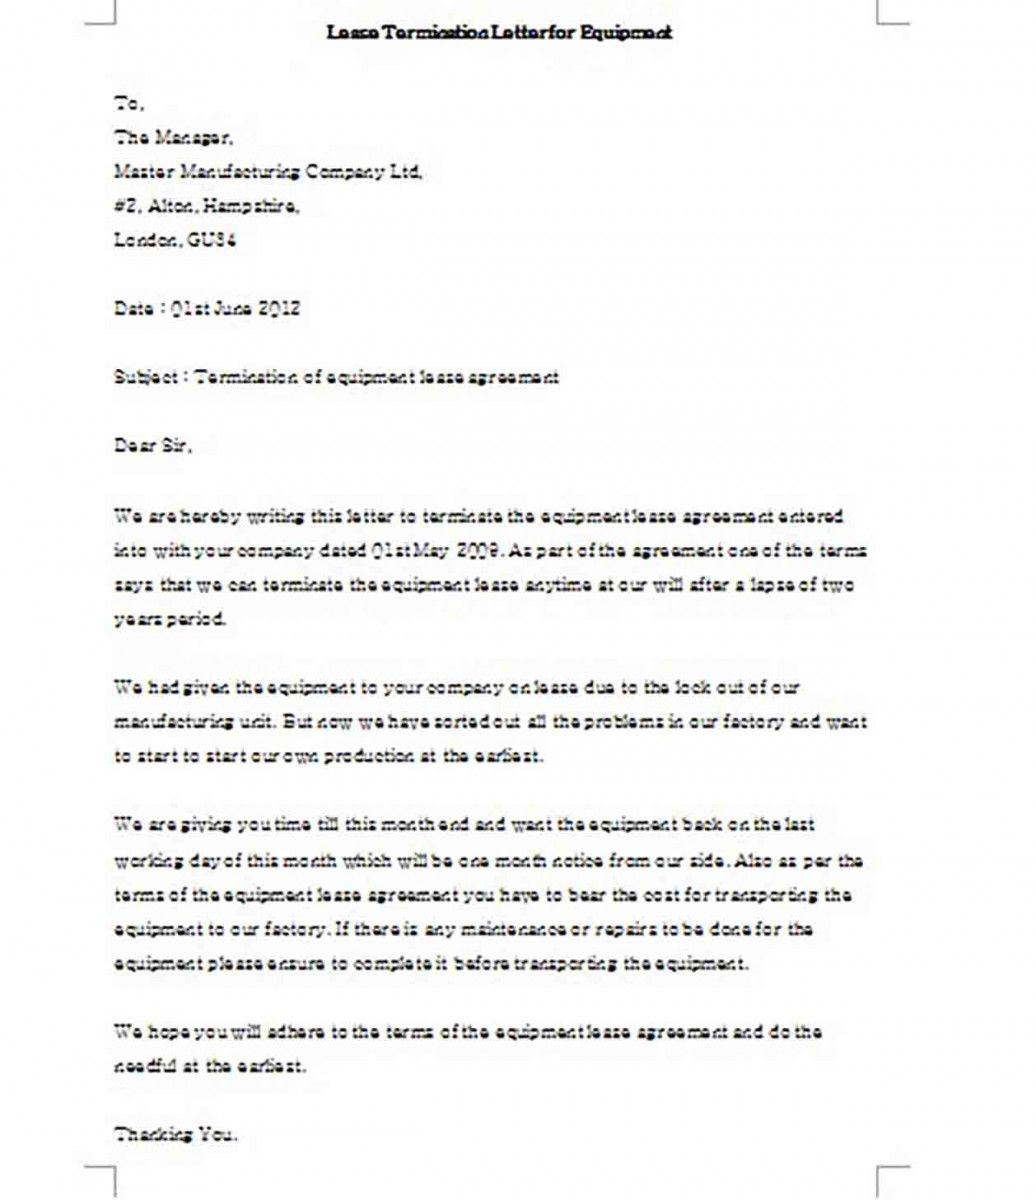 Lease Termination Letter For Equipment Templates Example Lettering Ways To Write Letter For Him